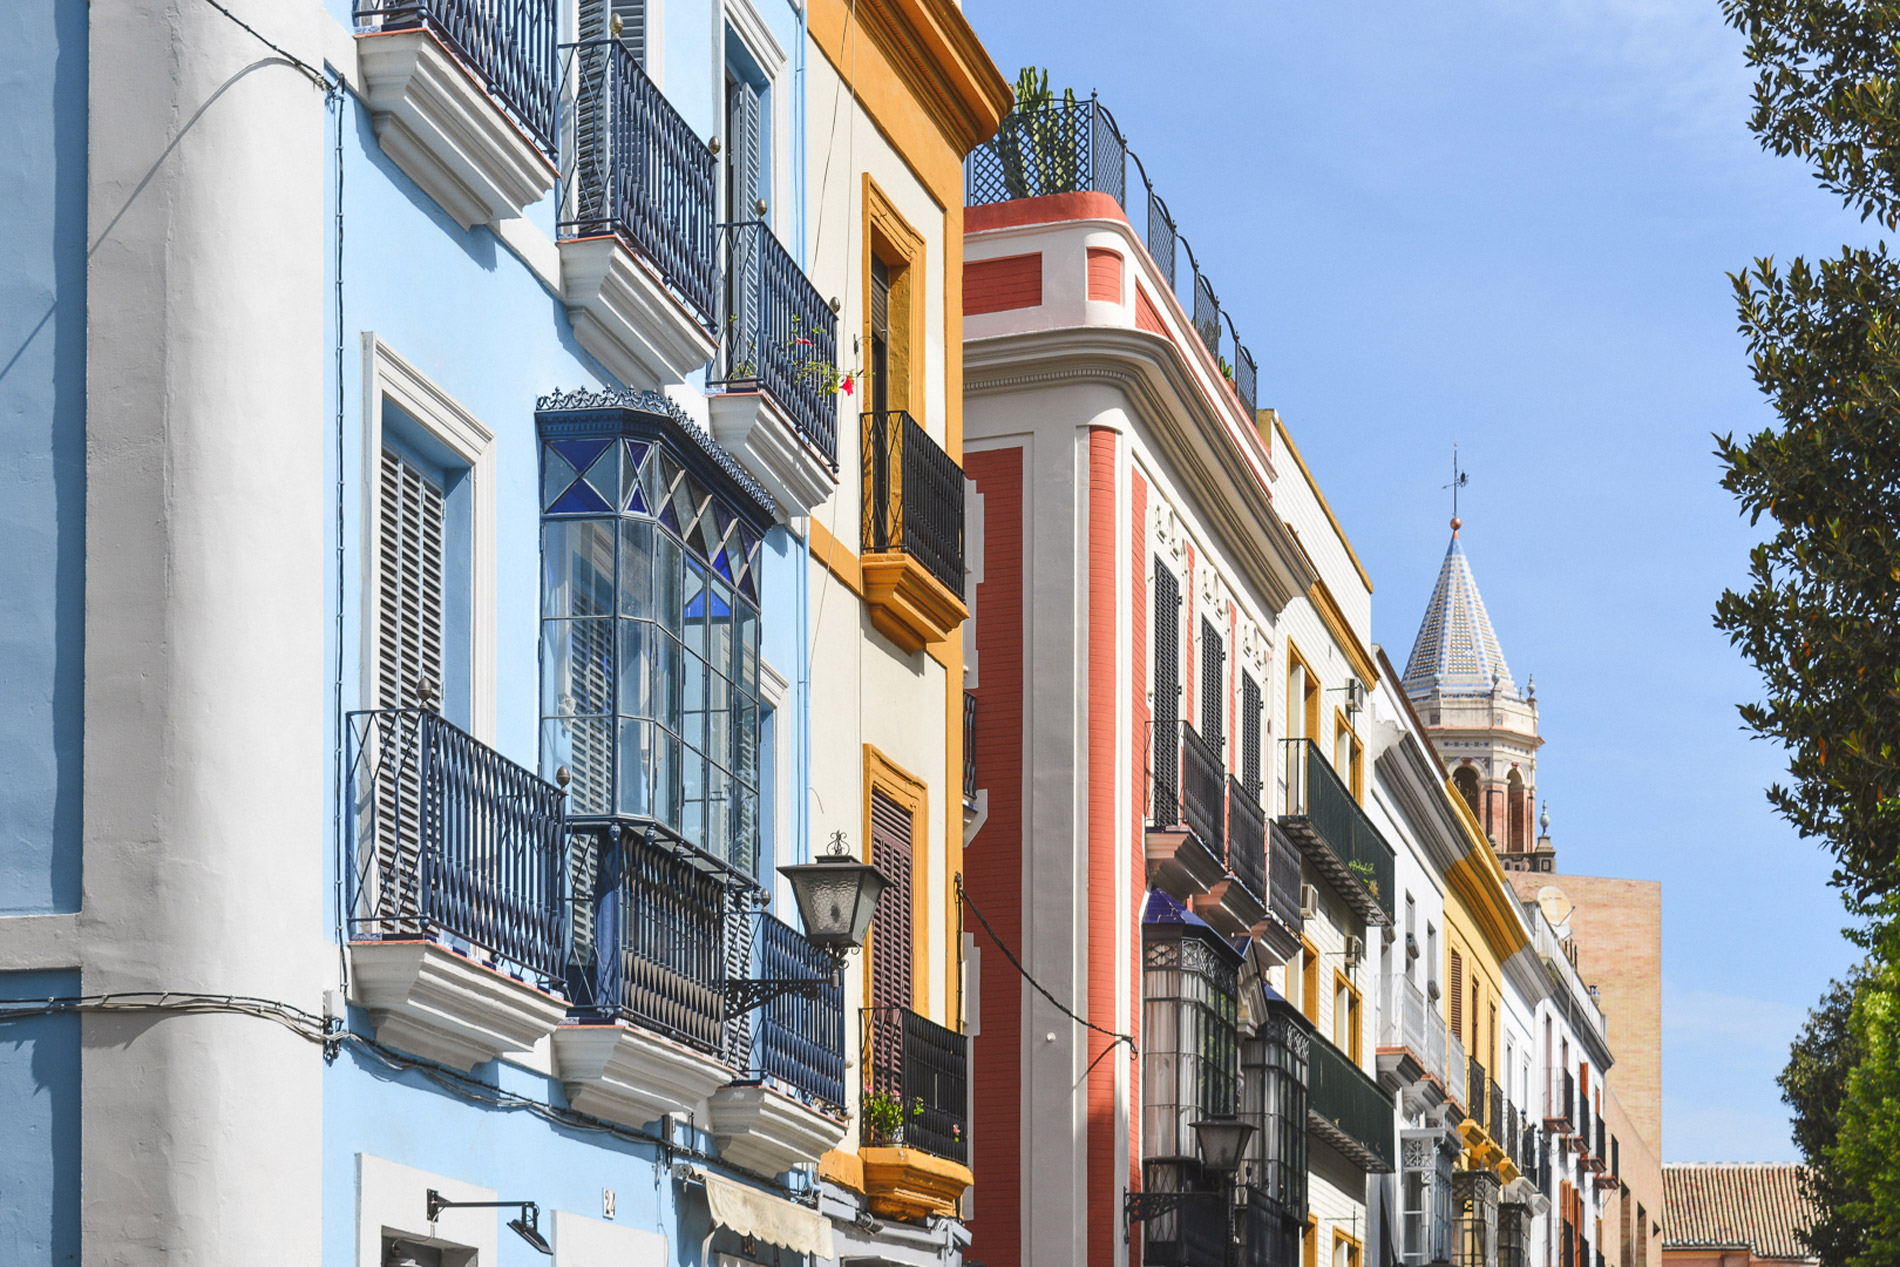 Colorful houses are one of Seville's main attractions